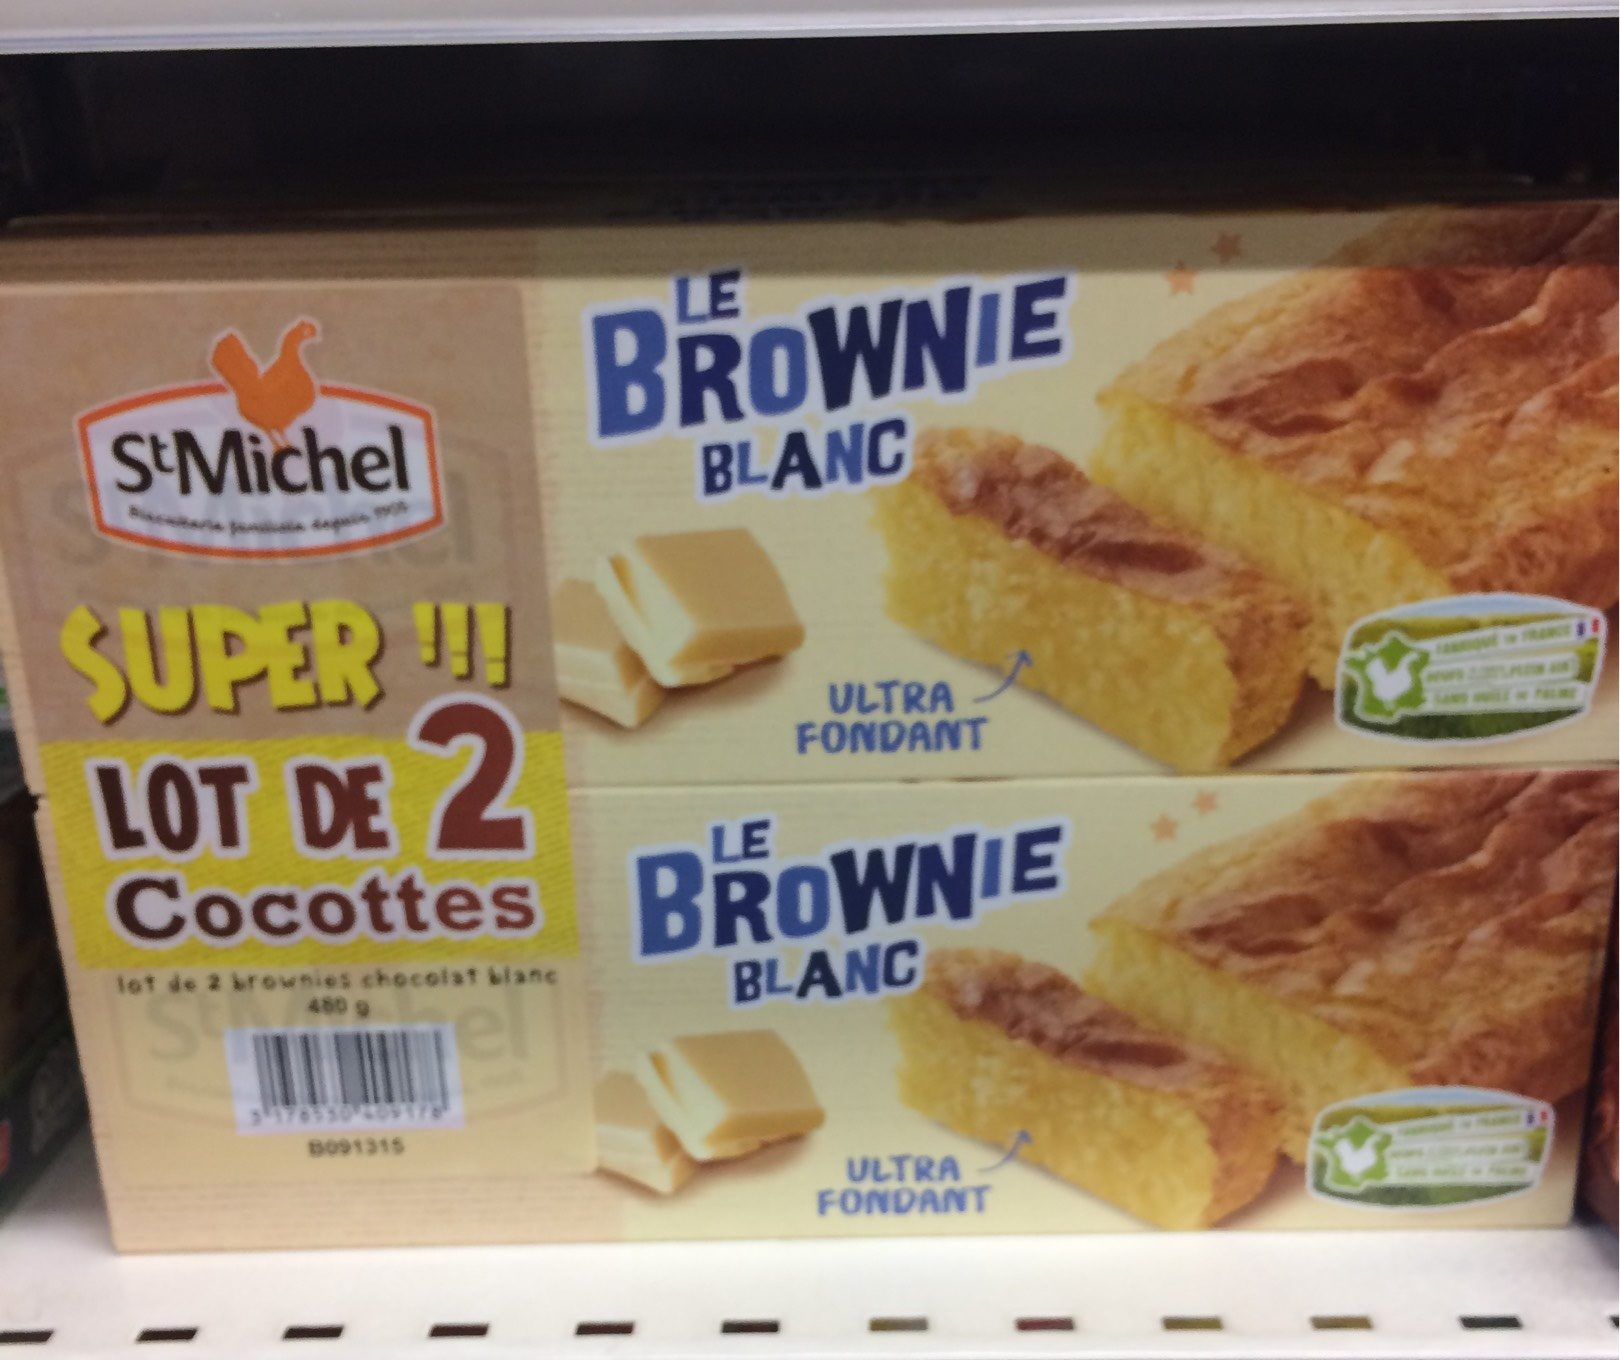 Le Brownie Blanc - Product